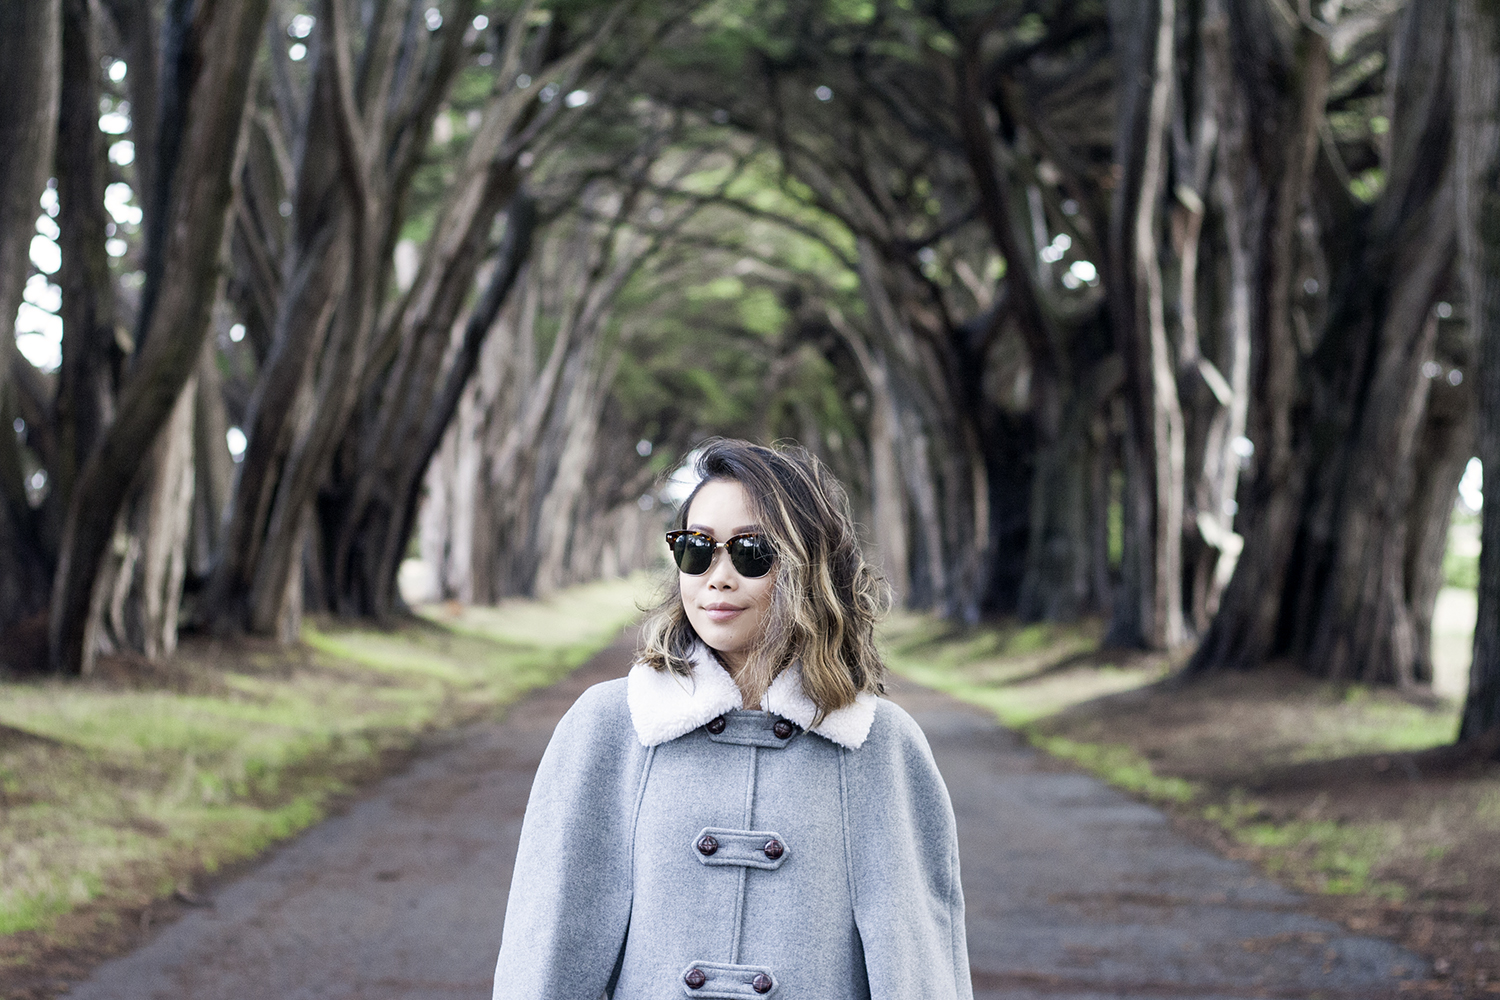 06pointreyes-cypresstreetunnel-madewell-fashion-travel-style